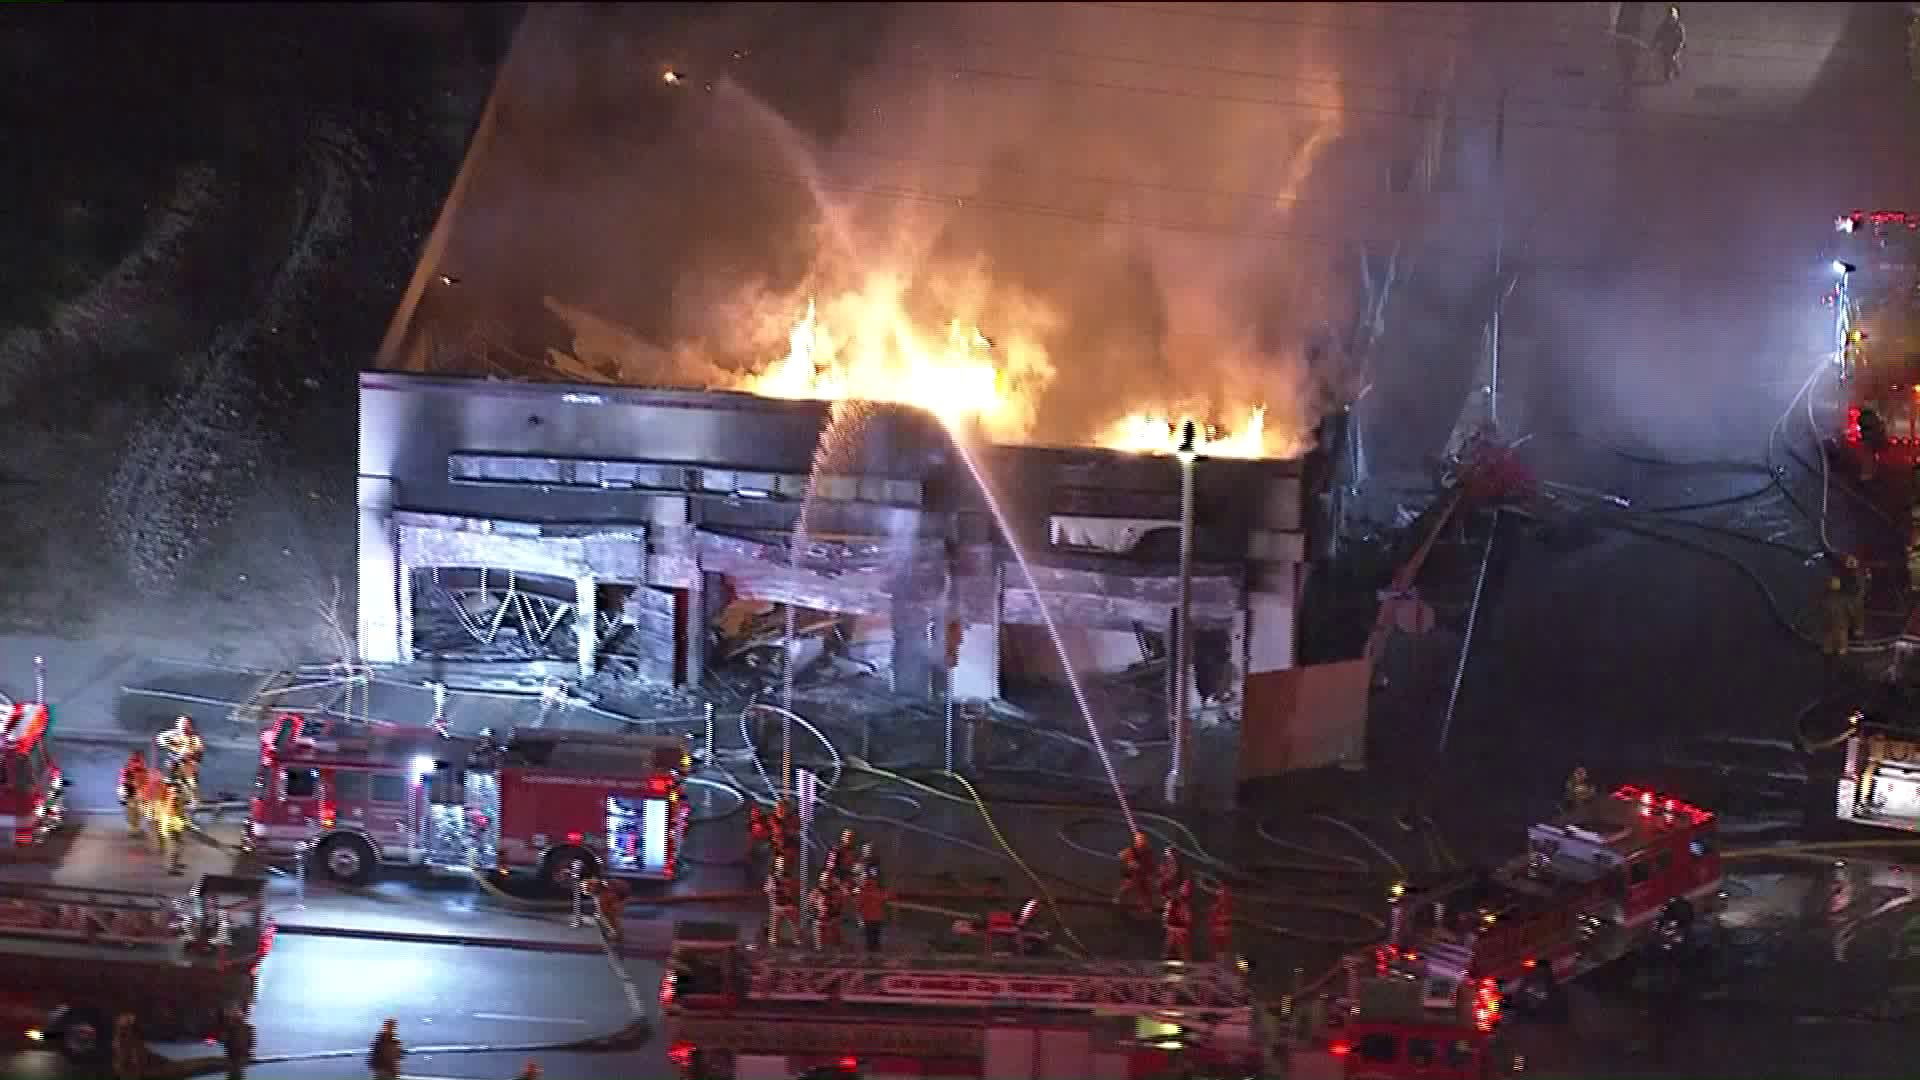 Firefighters are seen battling a blaze at a vacant strip mall in South L.A. on Feb. 13, 2018. (Credit: KTLA)